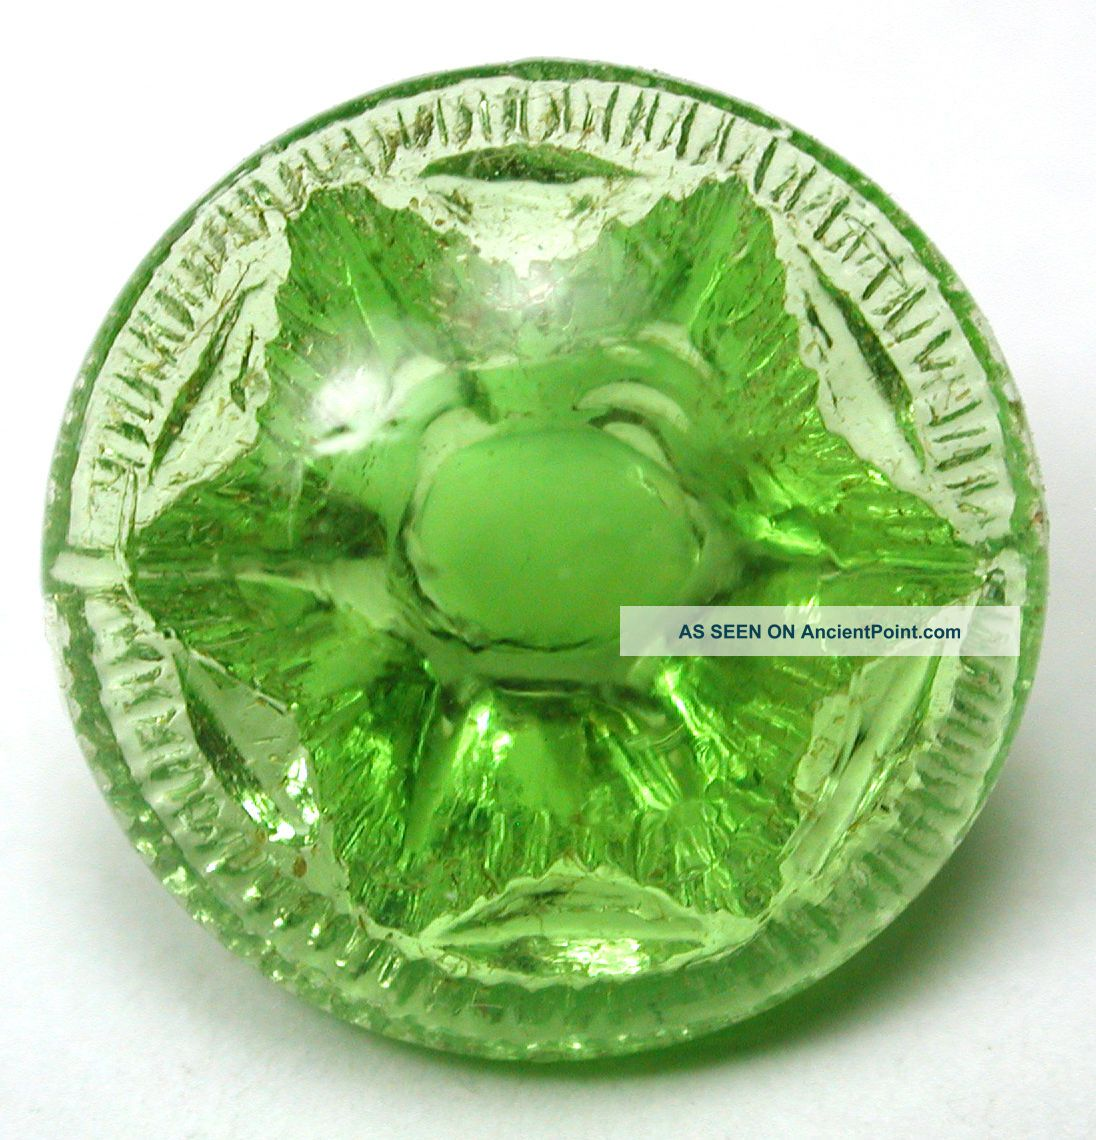 Antique Radiant Glass Button Flower Mold W/ Lime Green Color - 5/8